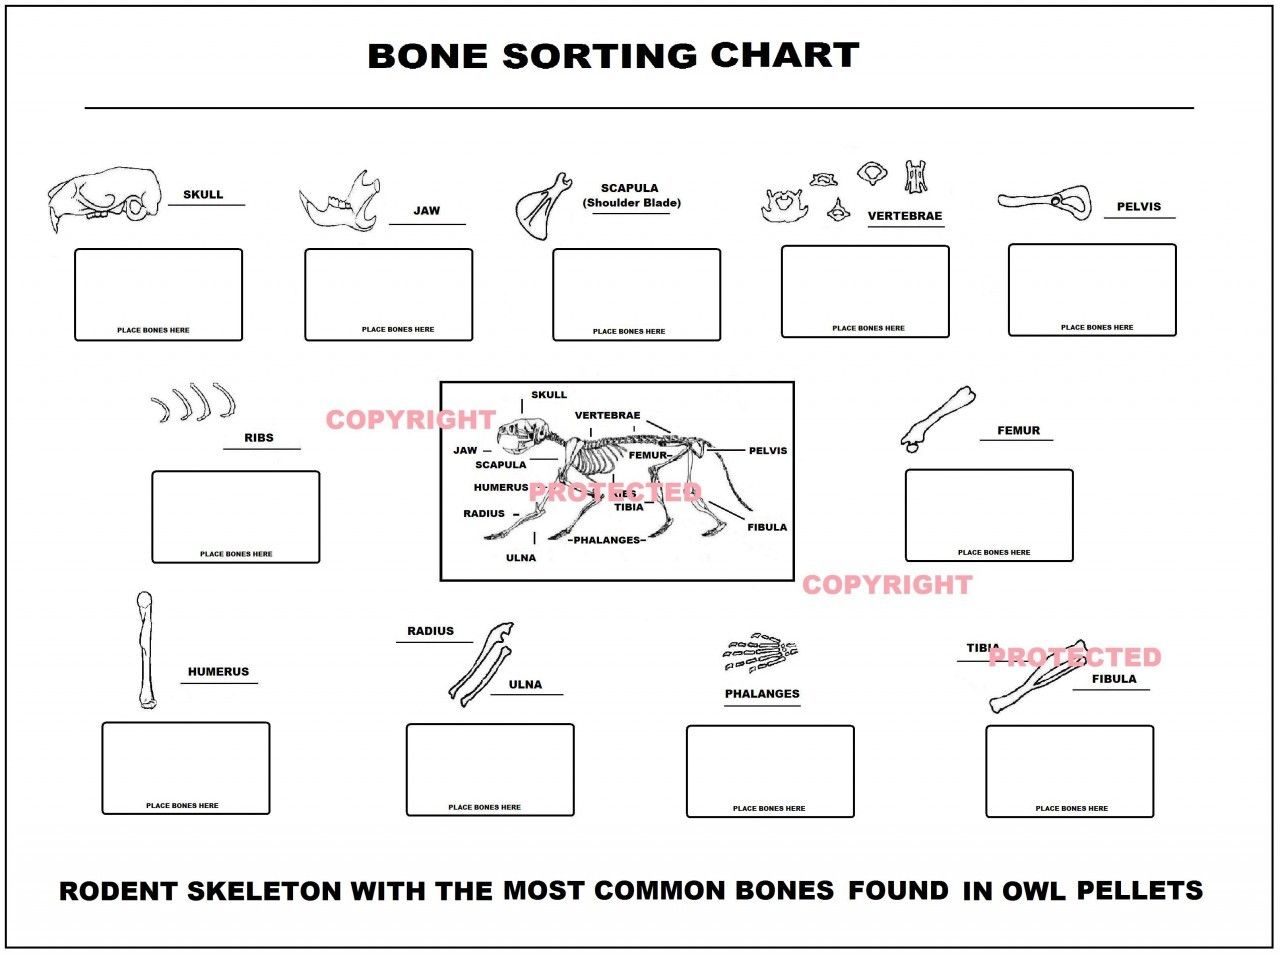 worksheet Virtual Owl Pellet Dissection Worksheet owl pellet bone sorting chart pdf download and homeschool download